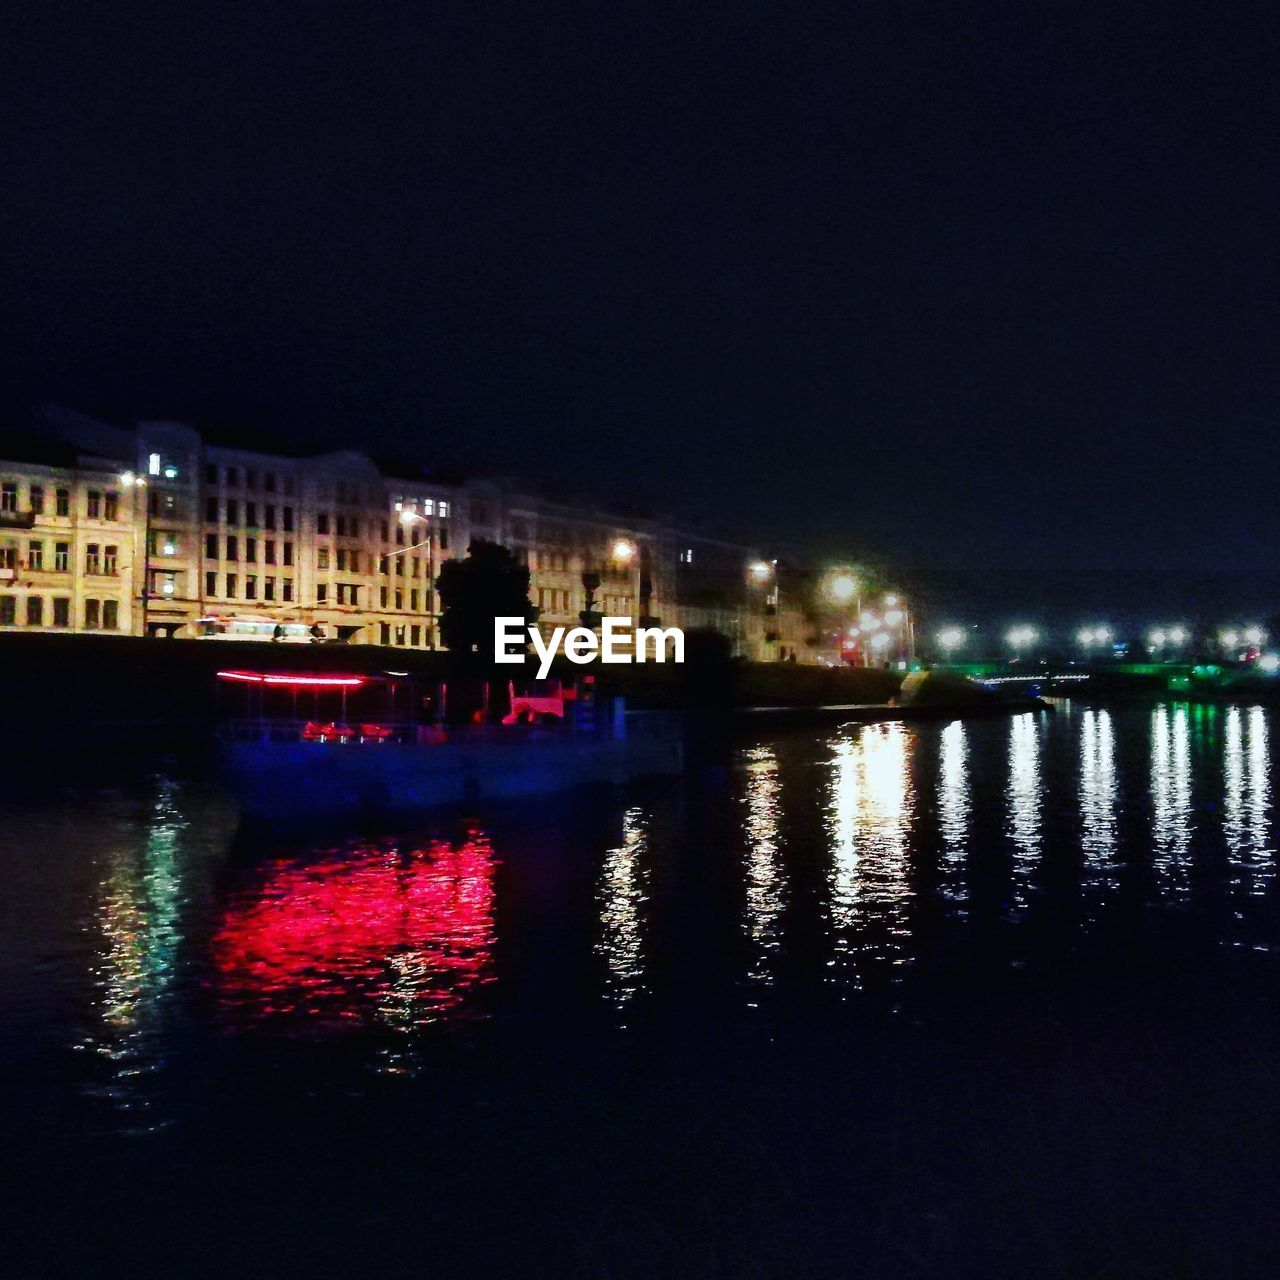 night, reflection, illuminated, water, built structure, building exterior, architecture, waterfront, city, sky, nature, river, building, no people, copy space, outdoors, clear sky, lighting equipment, nightlife